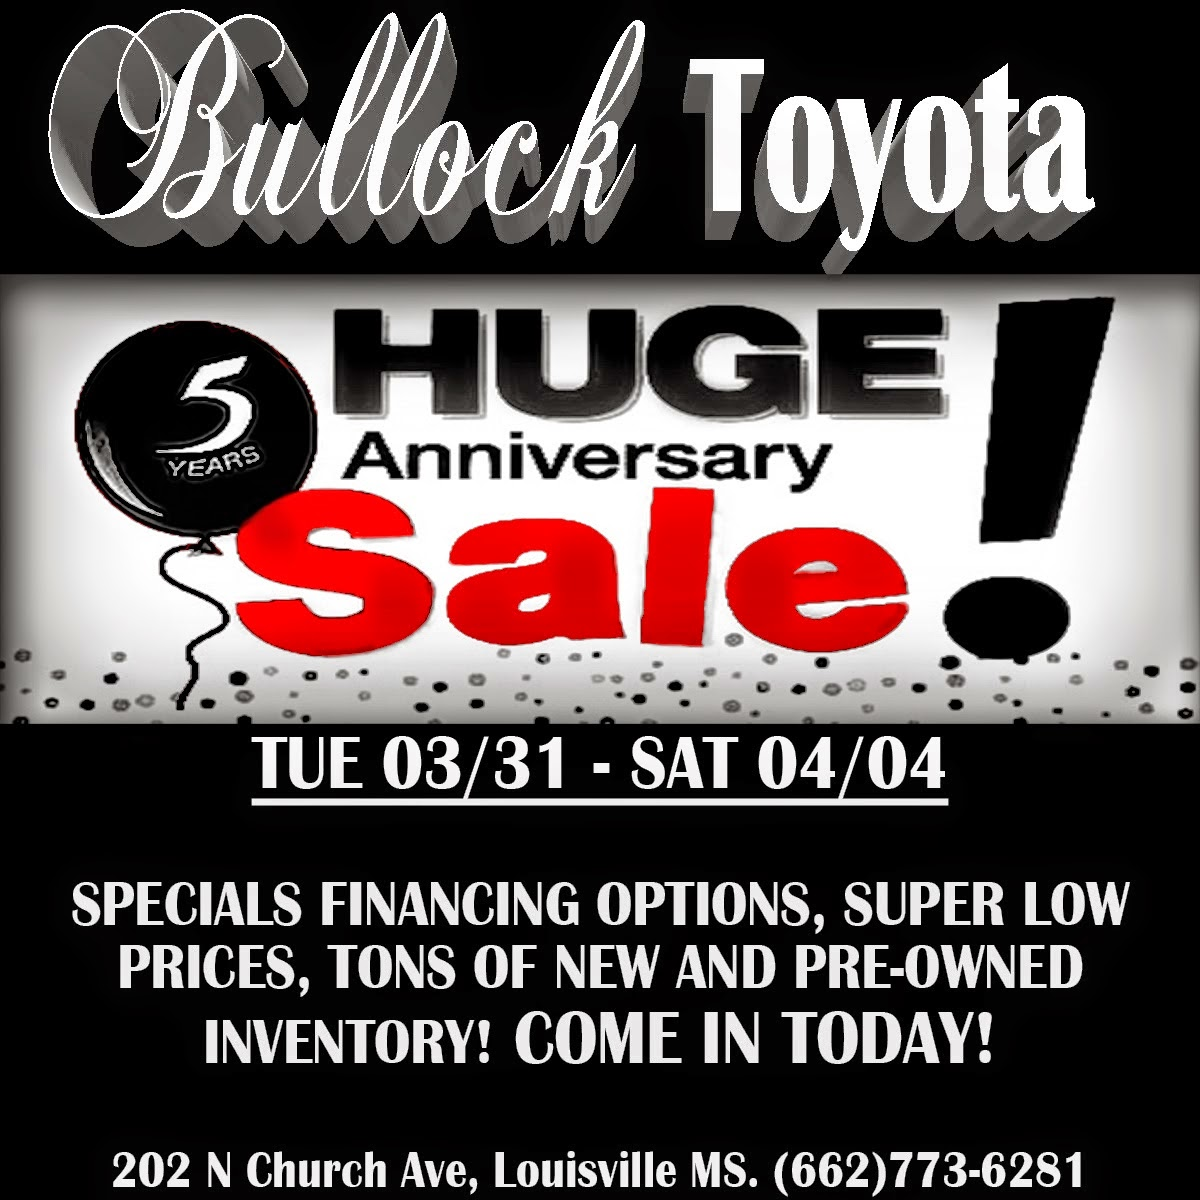 The Huge Sale At Bullock Toyota Continues!!